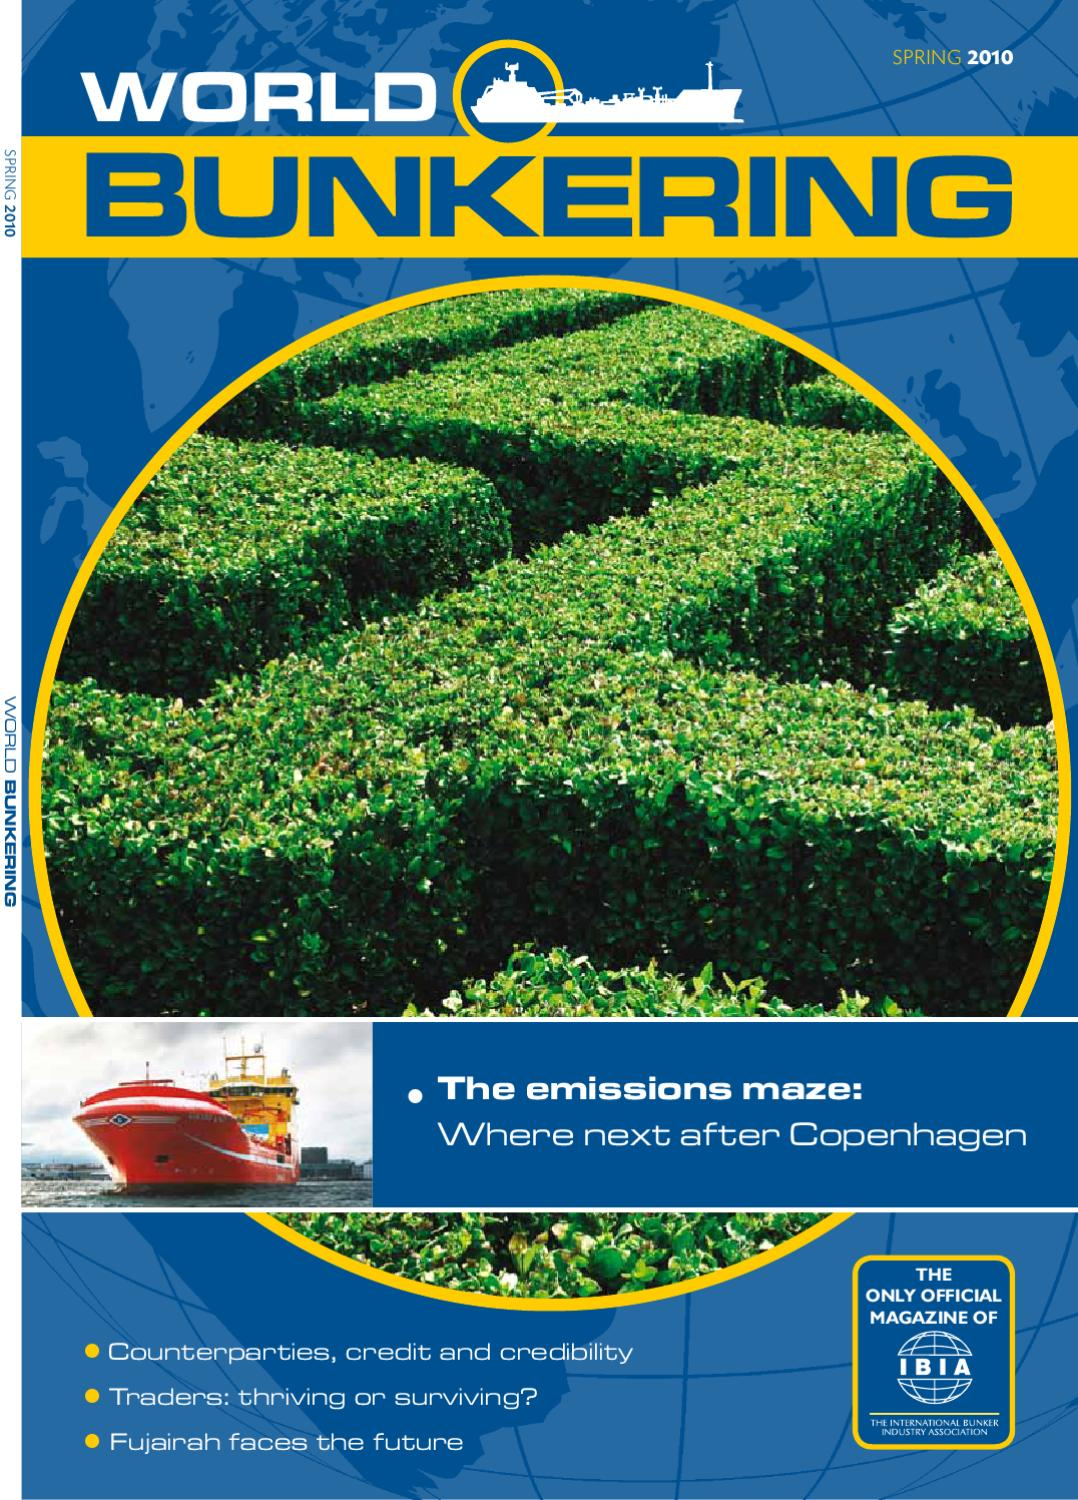 World Bunkering - Spring 2010 by Maritime Media - issuu